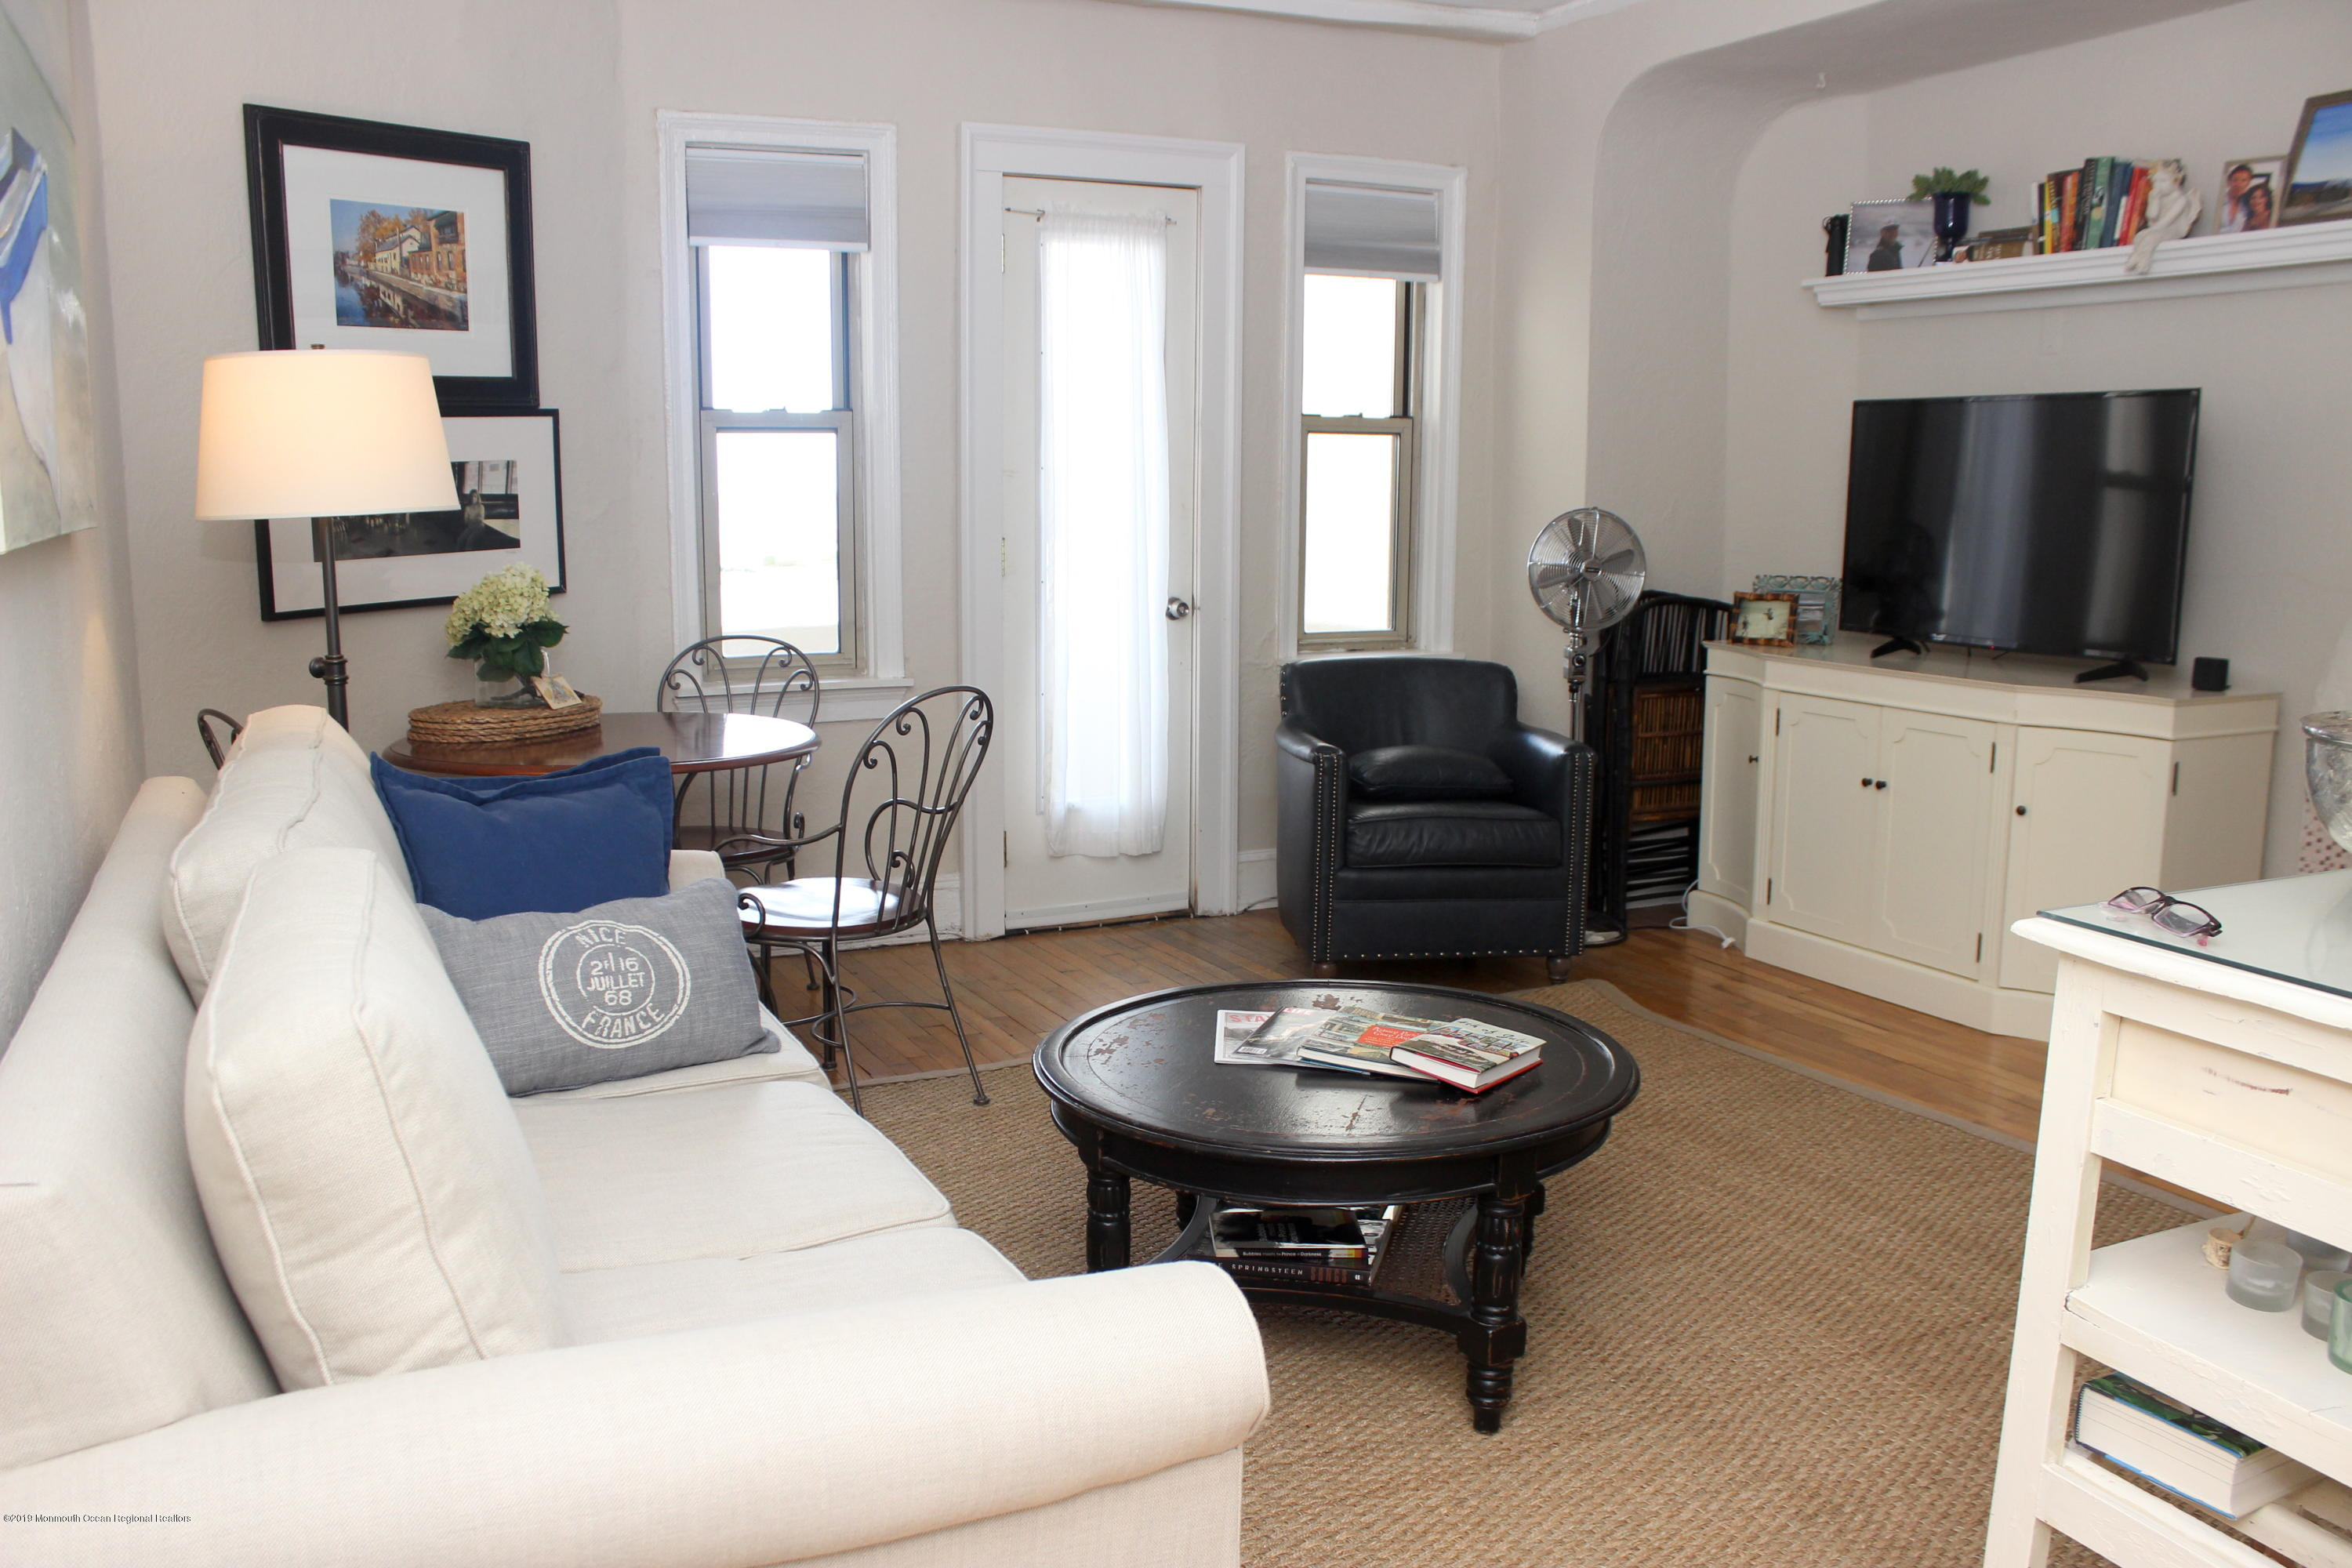 Life really is better at the shore! Move into this large 1BR condo in the historic pet-friendly Santander and you'll be just a couple of short blocks to the sand and the sea. This coveted ''L'' line unit boasts a private balcony and working fireplace. Whether enjoying the ocean and lake views from your balcony, or the fireplace views from your couch, you'll love your new home. Hardwood floors throughout, and updated kitchen and bathroom mean you can move right in and enjoy this summer. Why wait any longer for your place at the shore?